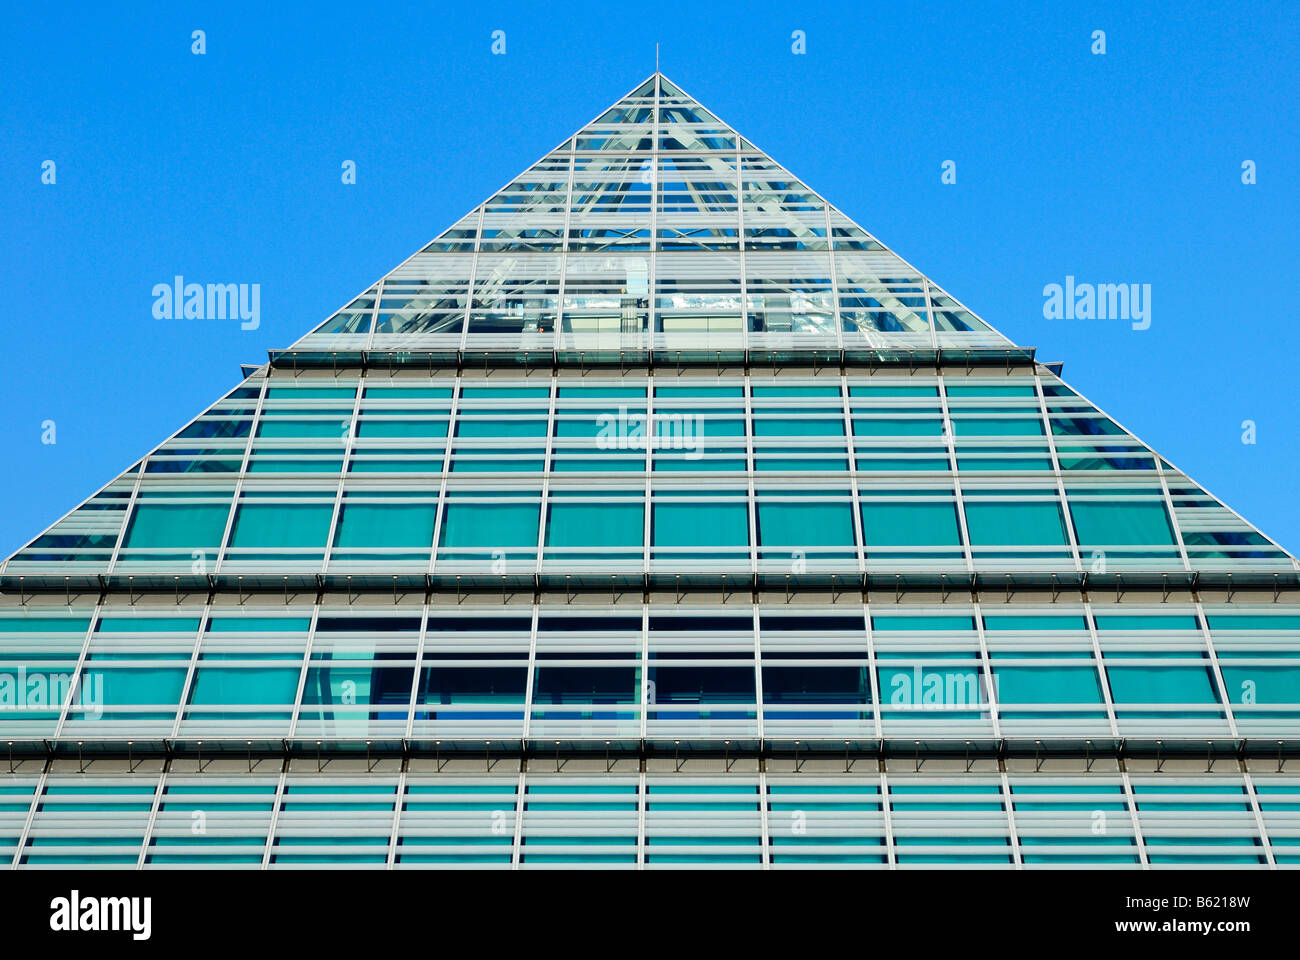 Neue Zentralbibliothek, new central library or glass pyramid, Ulm, Baden-Wuerttemberg, Germany, Europe Stock Photo